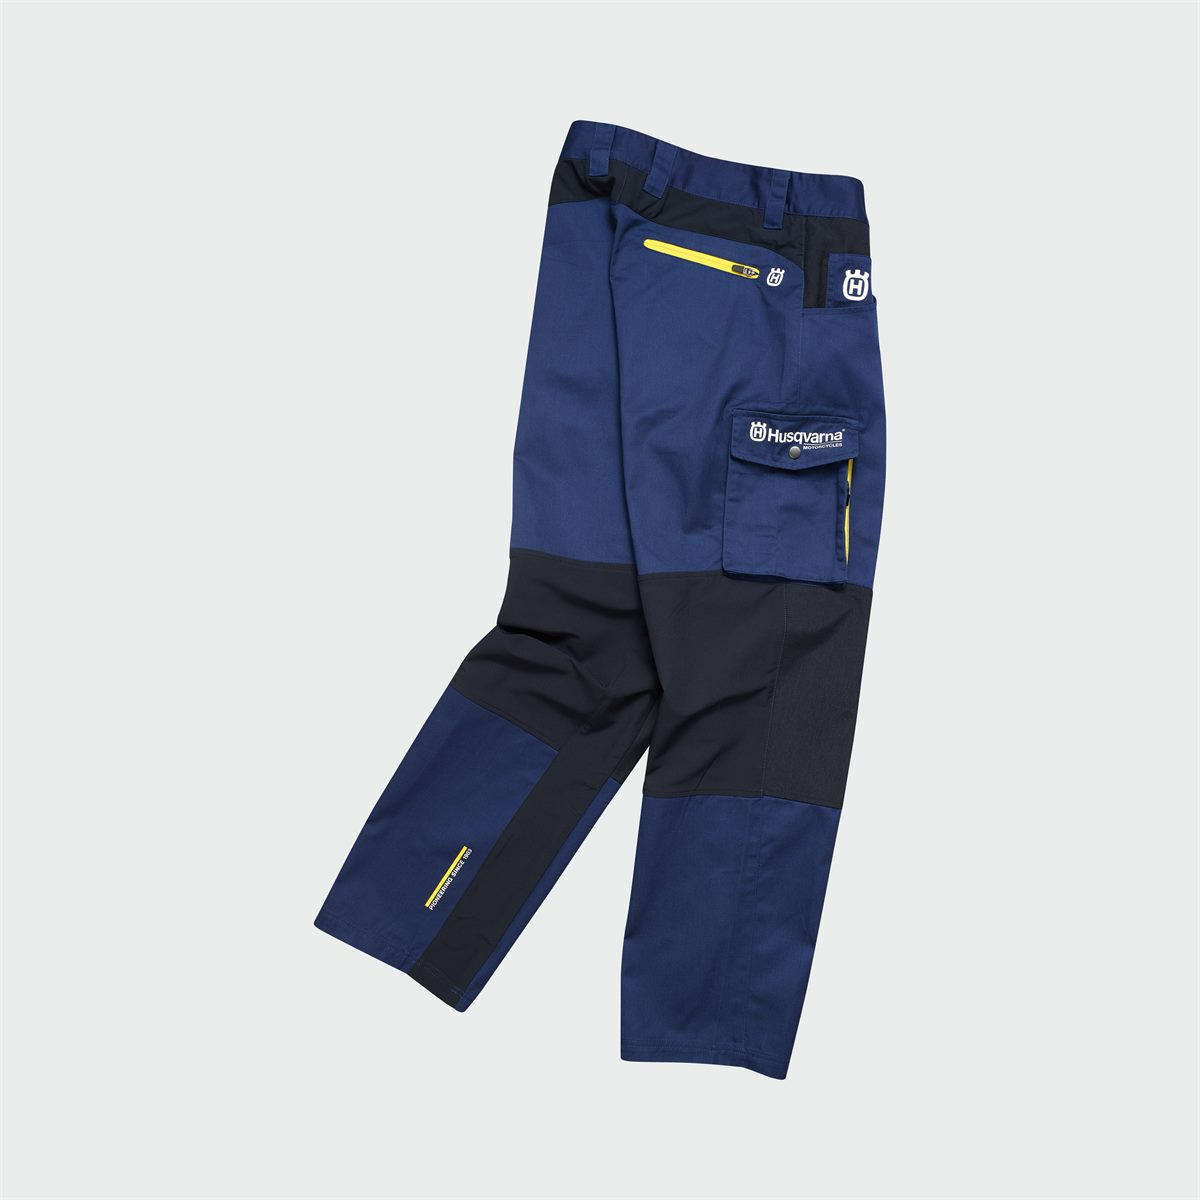 2019 HUSQVARNA REPLICA TEAM WEAR - REPLICA TEAM PANTS BACK